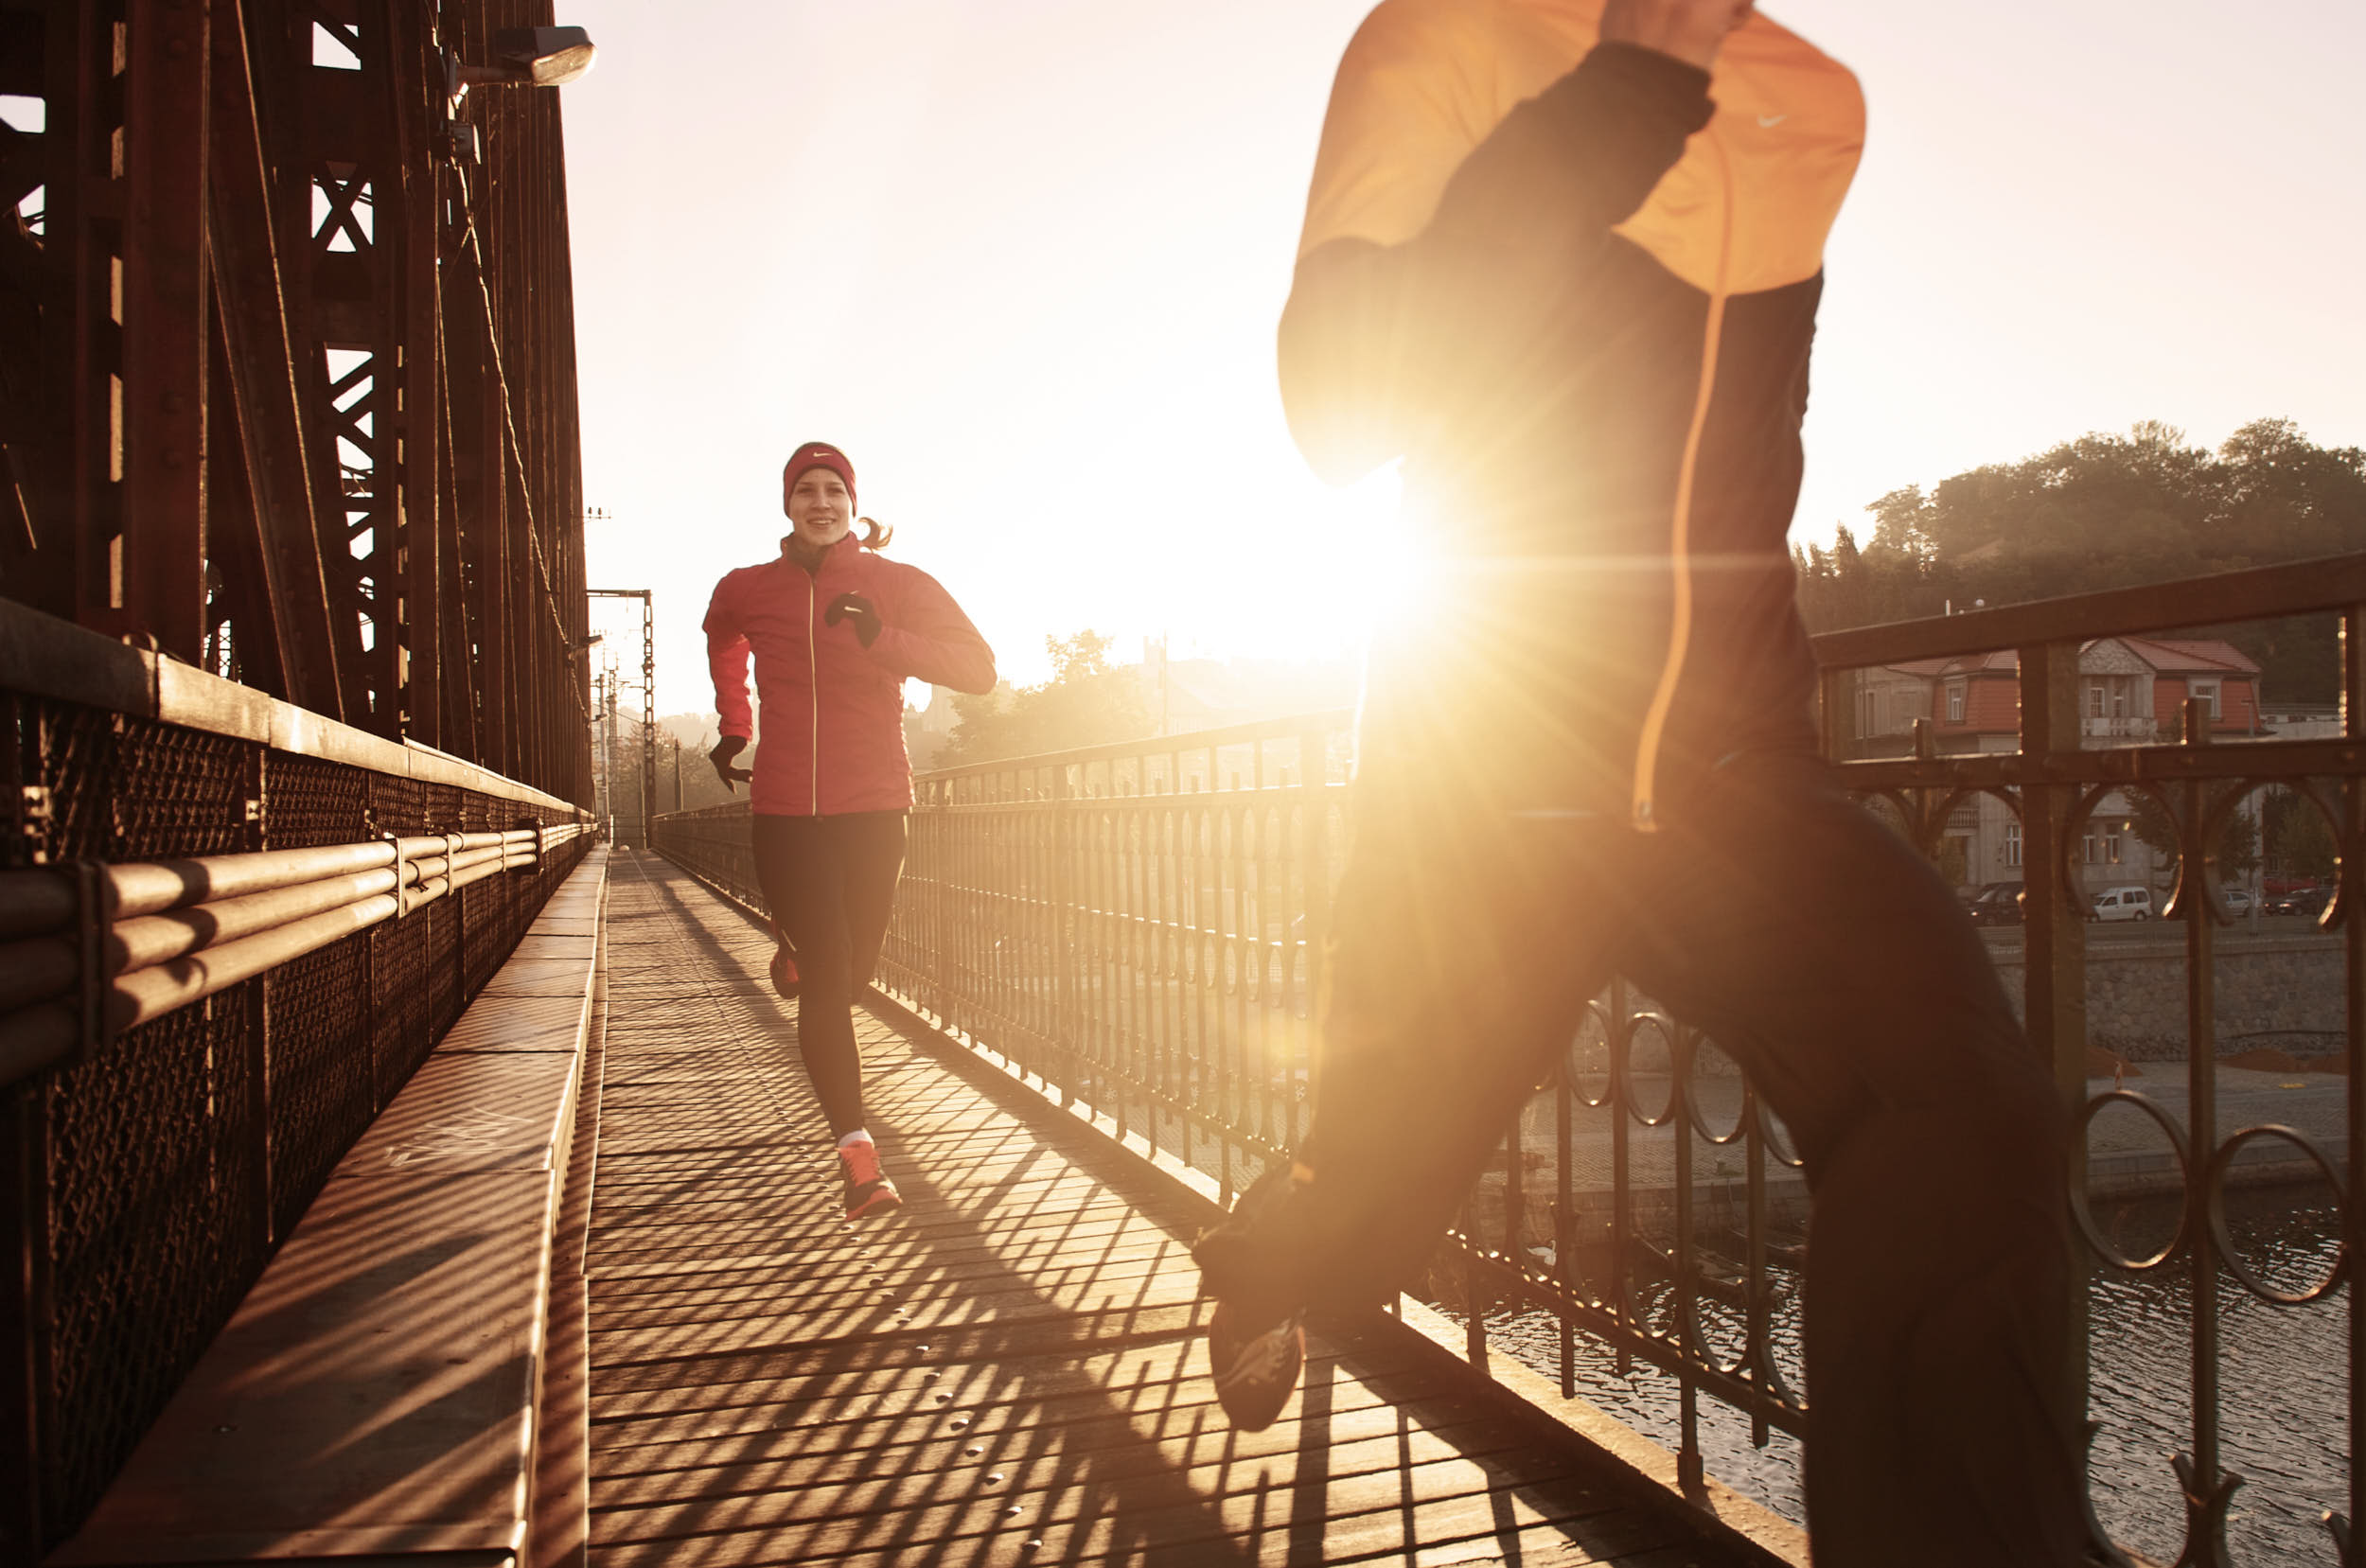 Couple running across a railway bridge at sunrise.